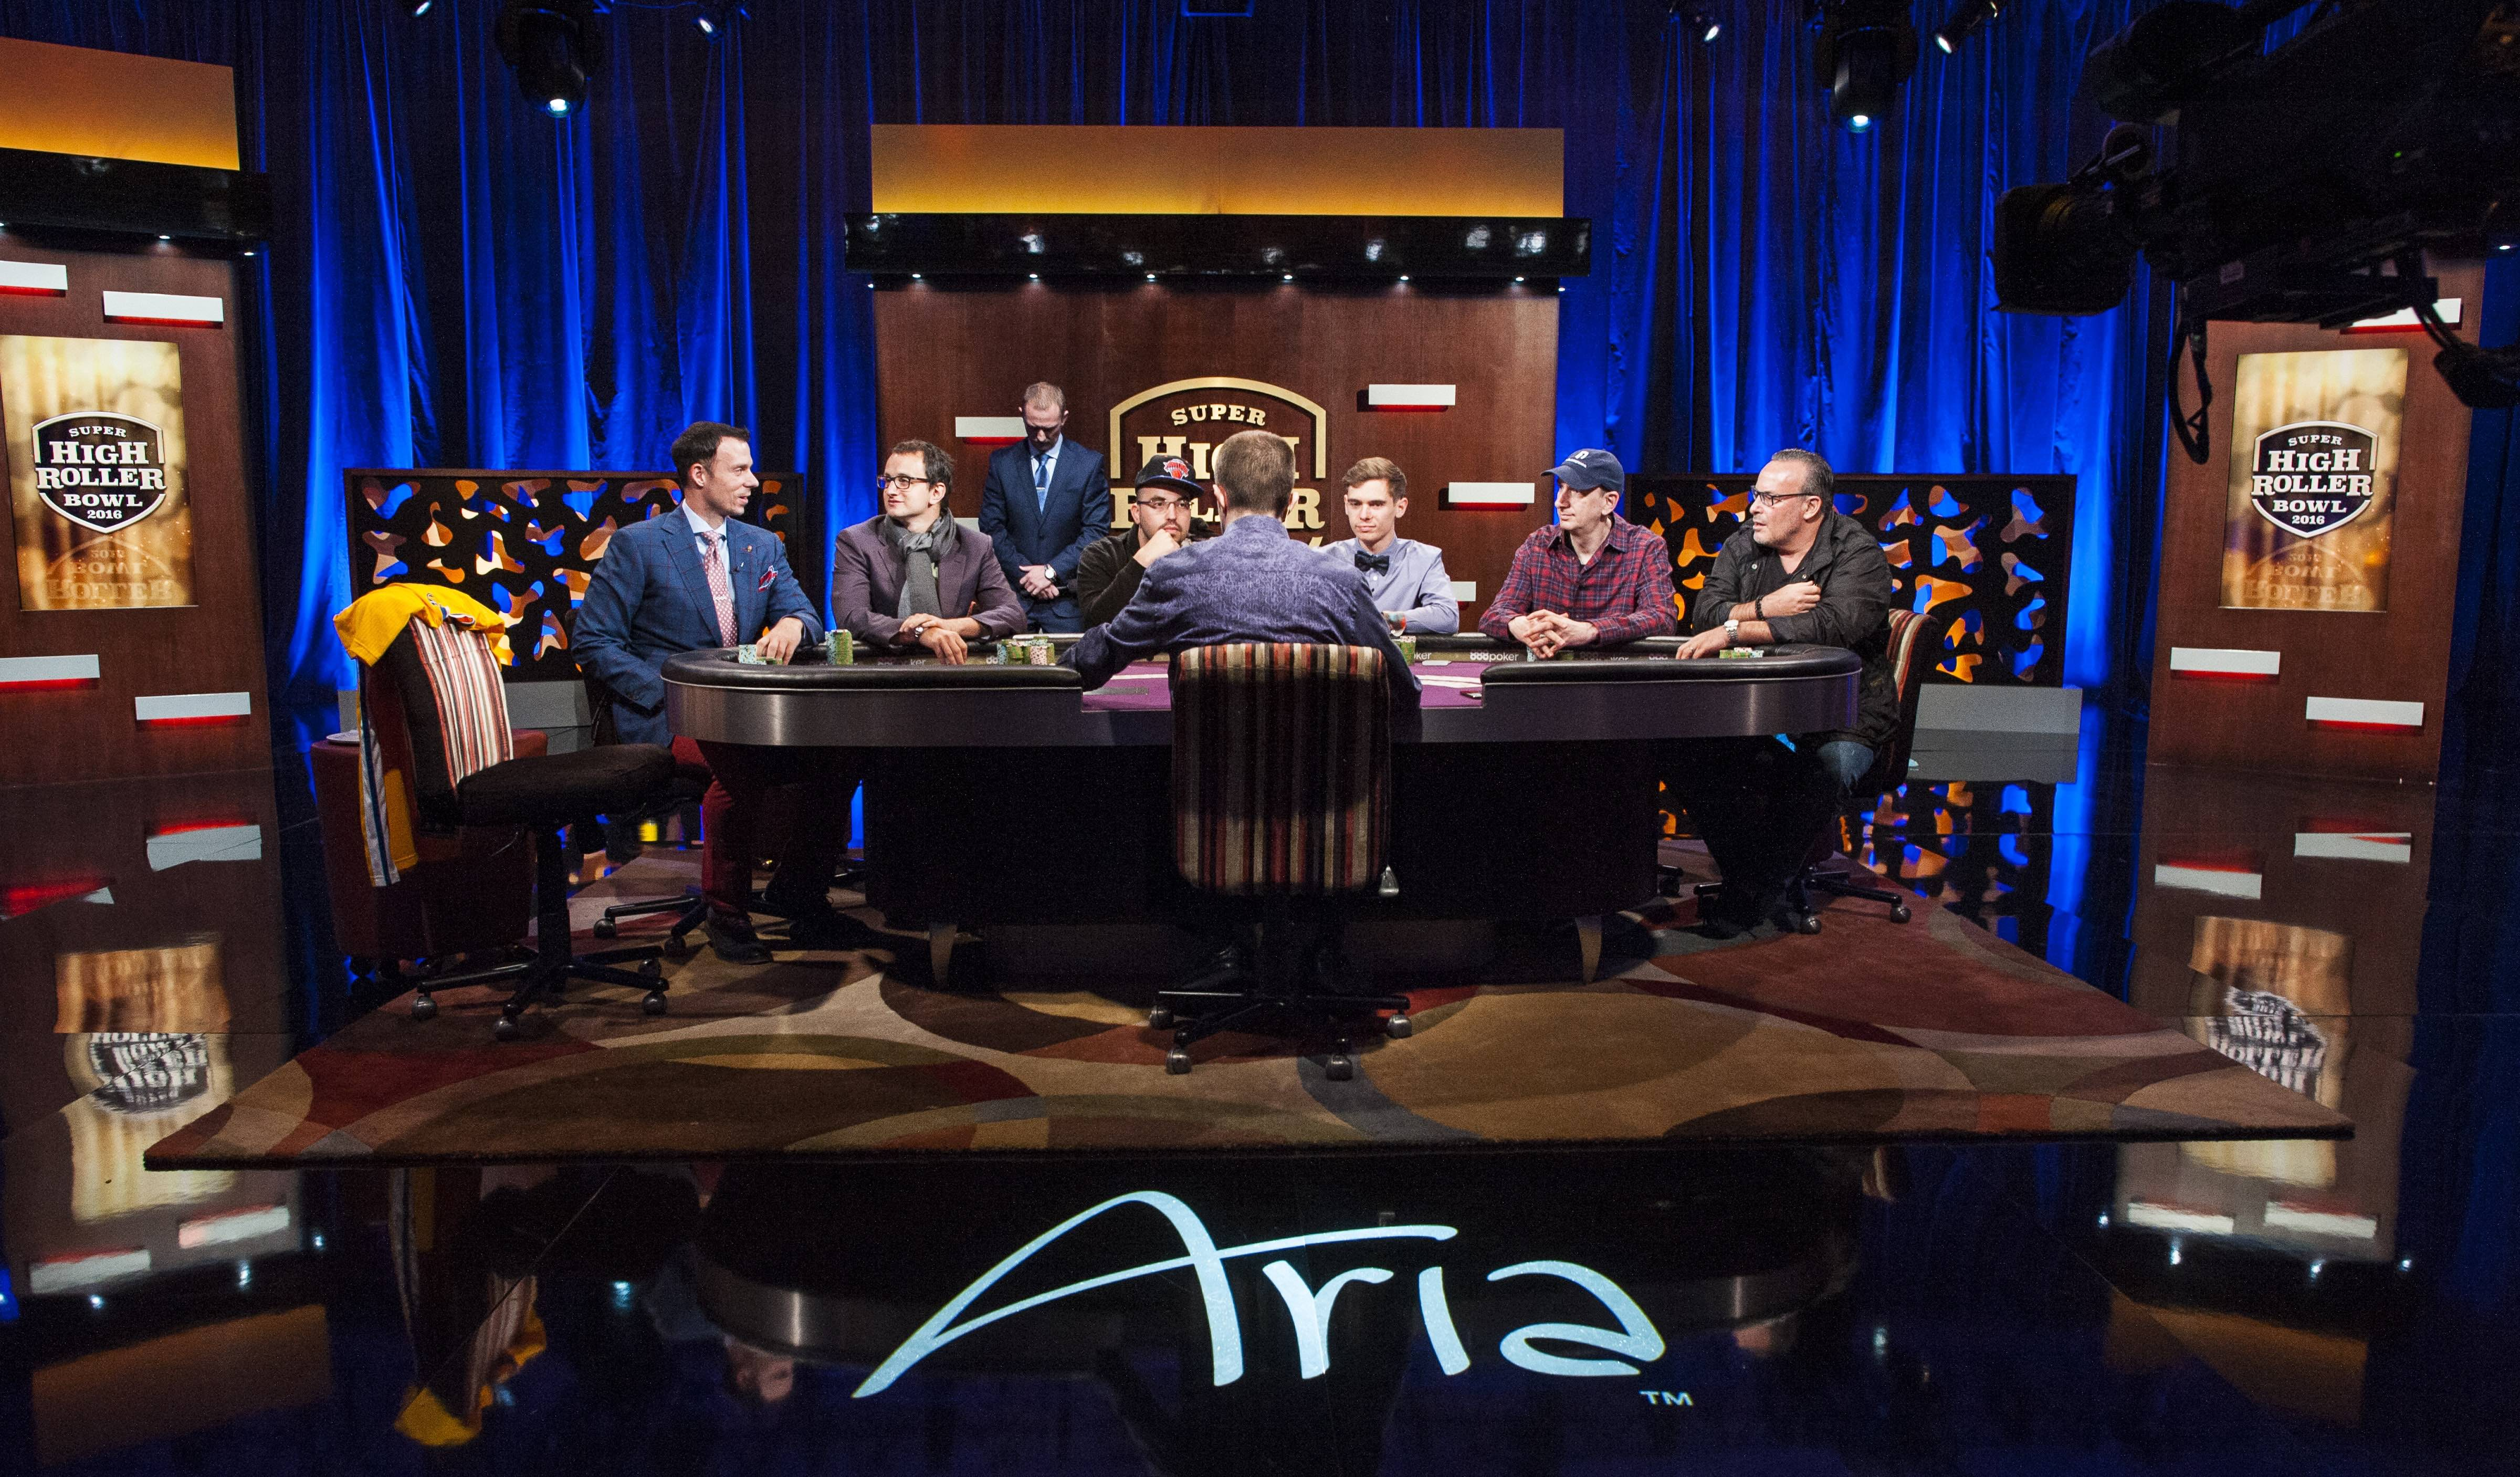 Super-High-Roller-Bowl-Final-Table-at-ARIA.jpg